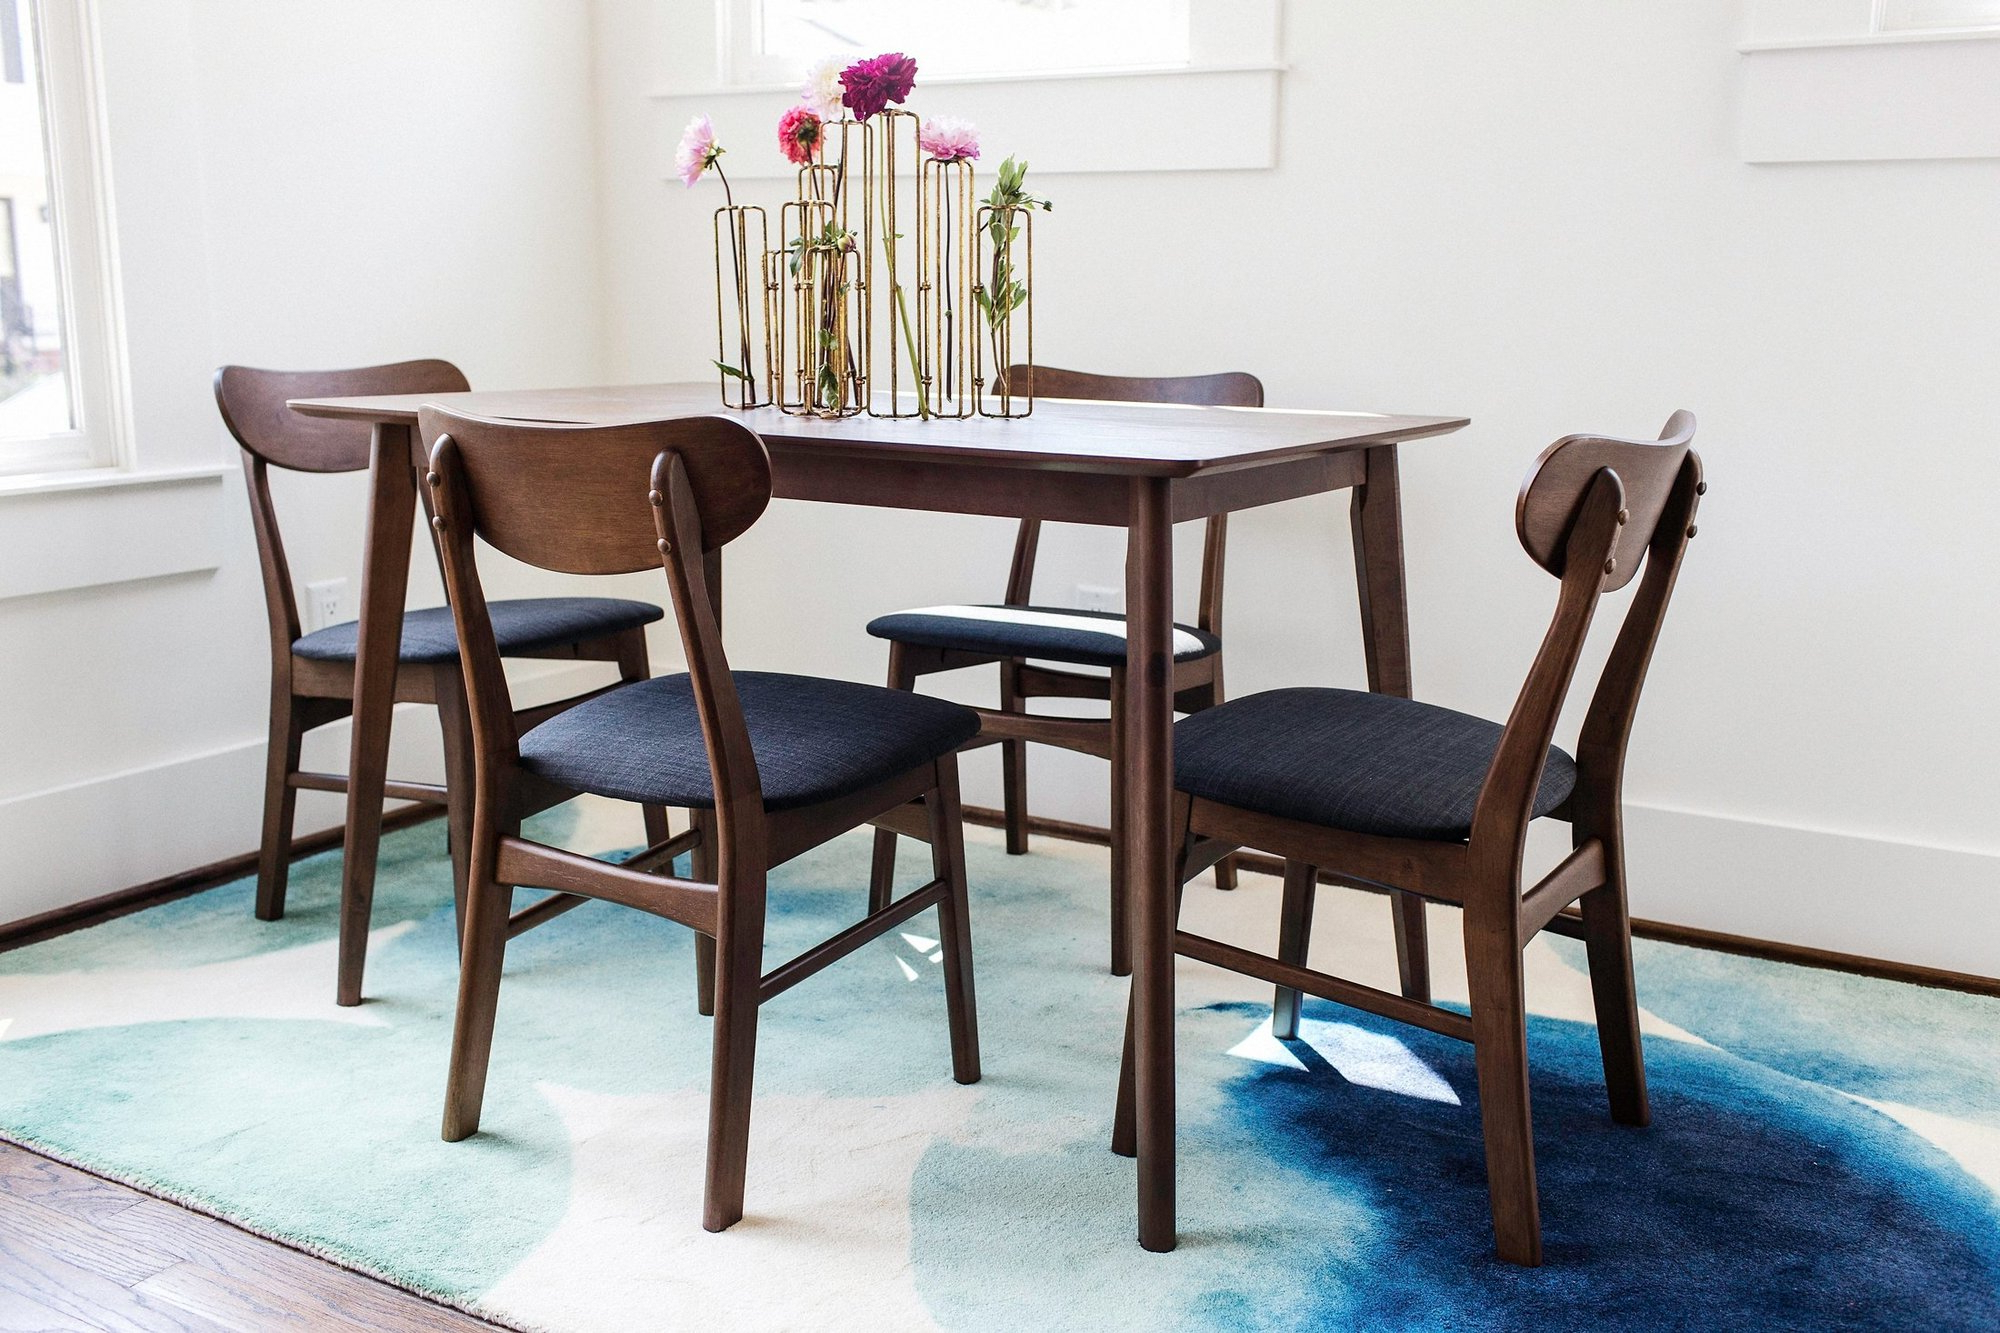 George Oliver Velazquez 5 Piece Breakfast Nook Dining Set Within Well Known Lightle 5 Piece Breakfast Nook Dining Sets (View 17 of 25)